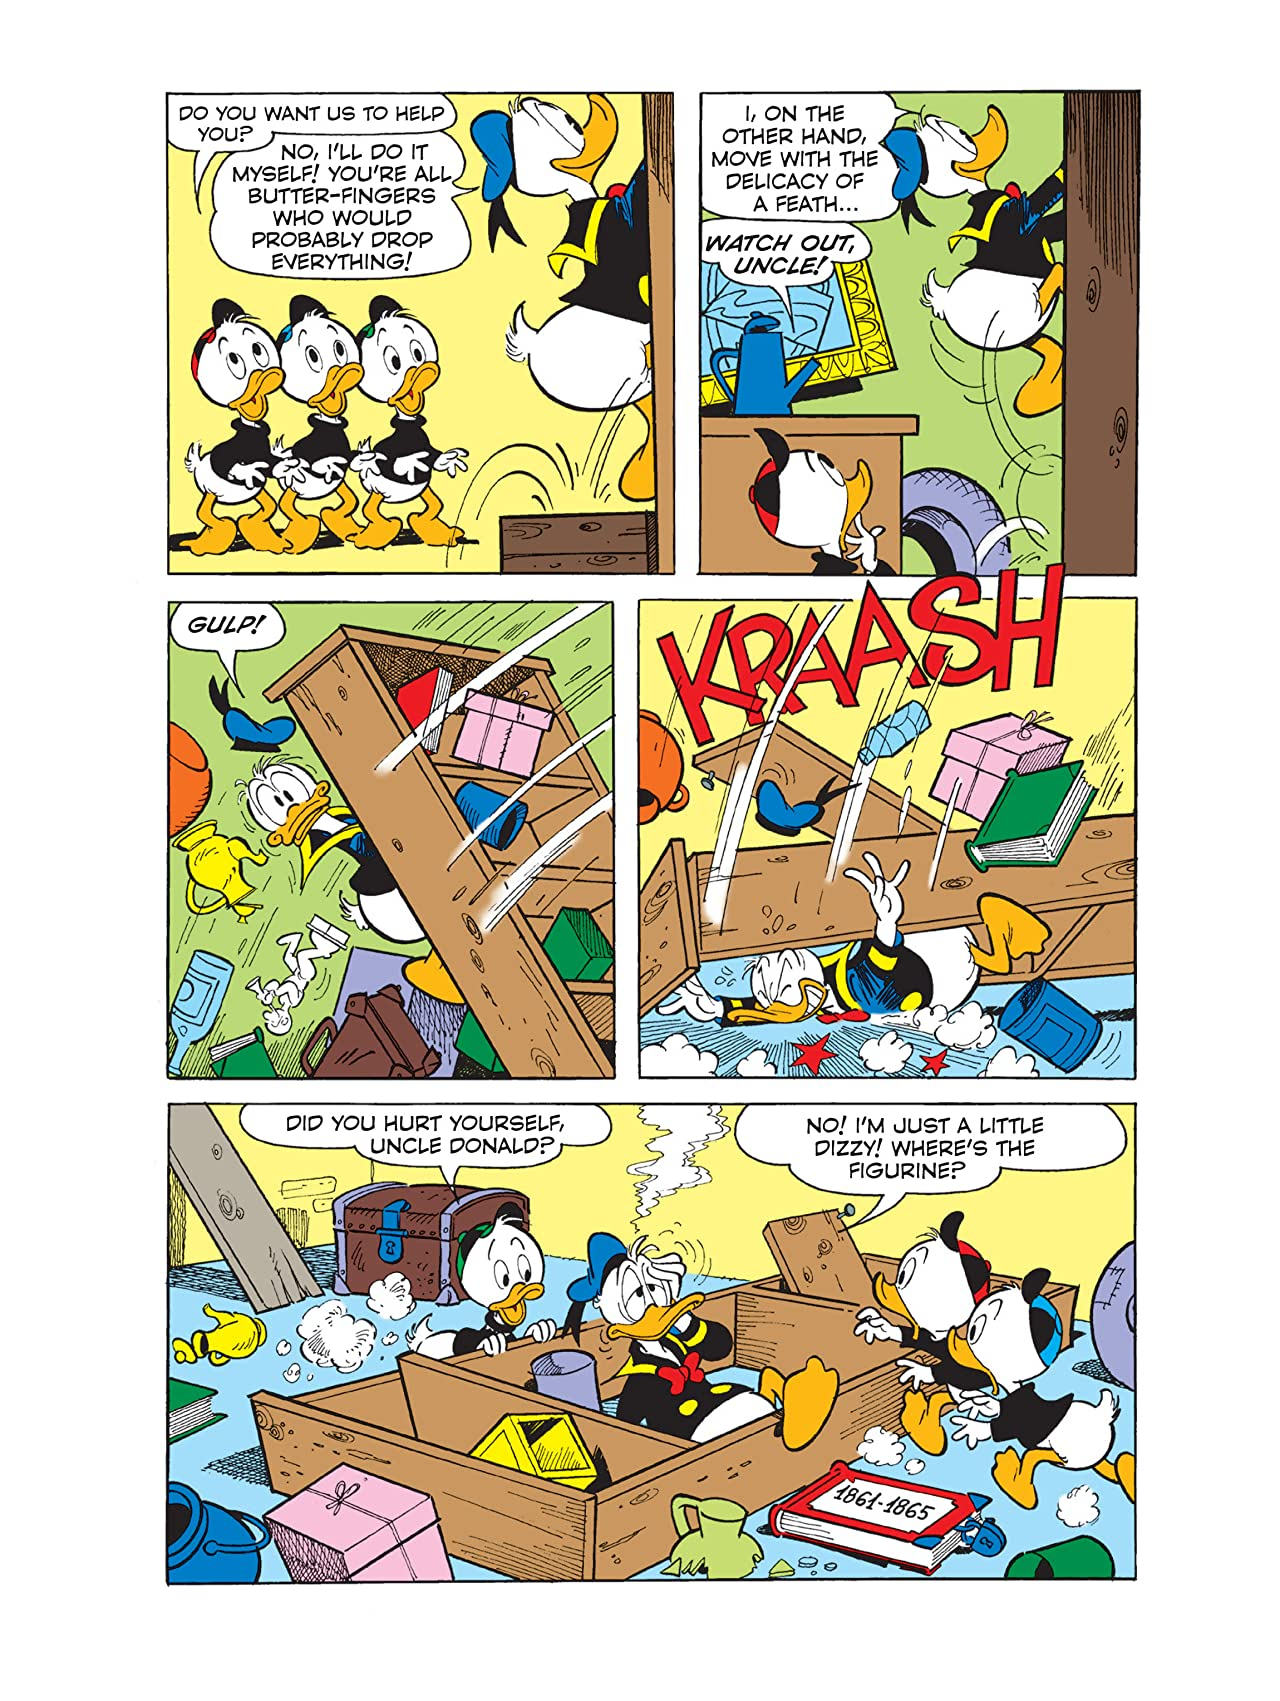 Donald Duck in Gone With the Wind #1